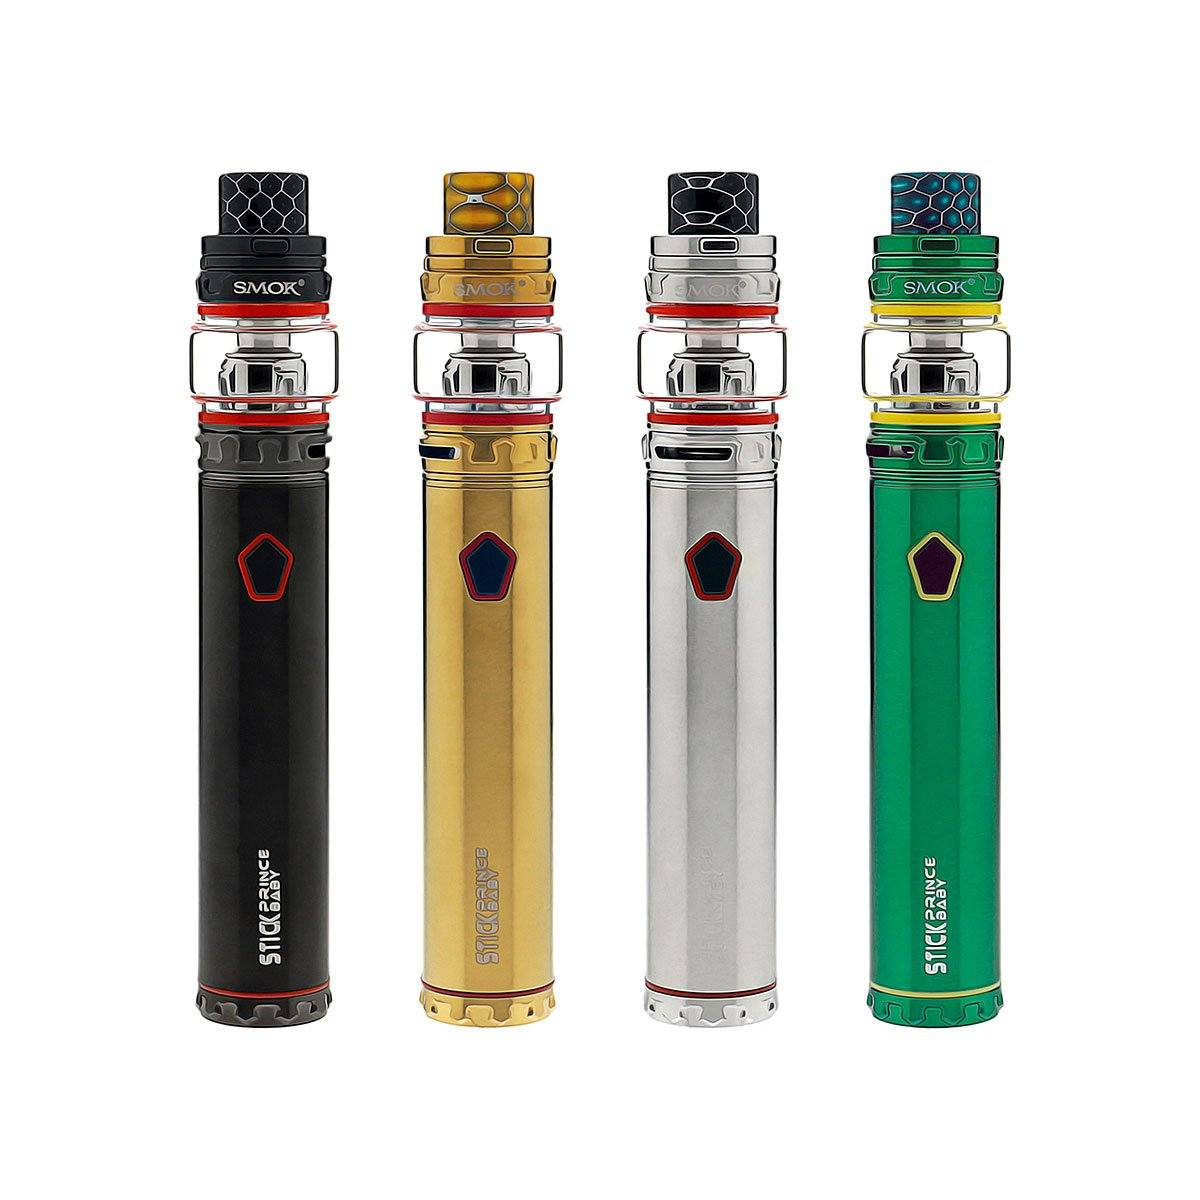 Vape Kits - SMOK Stick Prince Baby Kit - Group Image